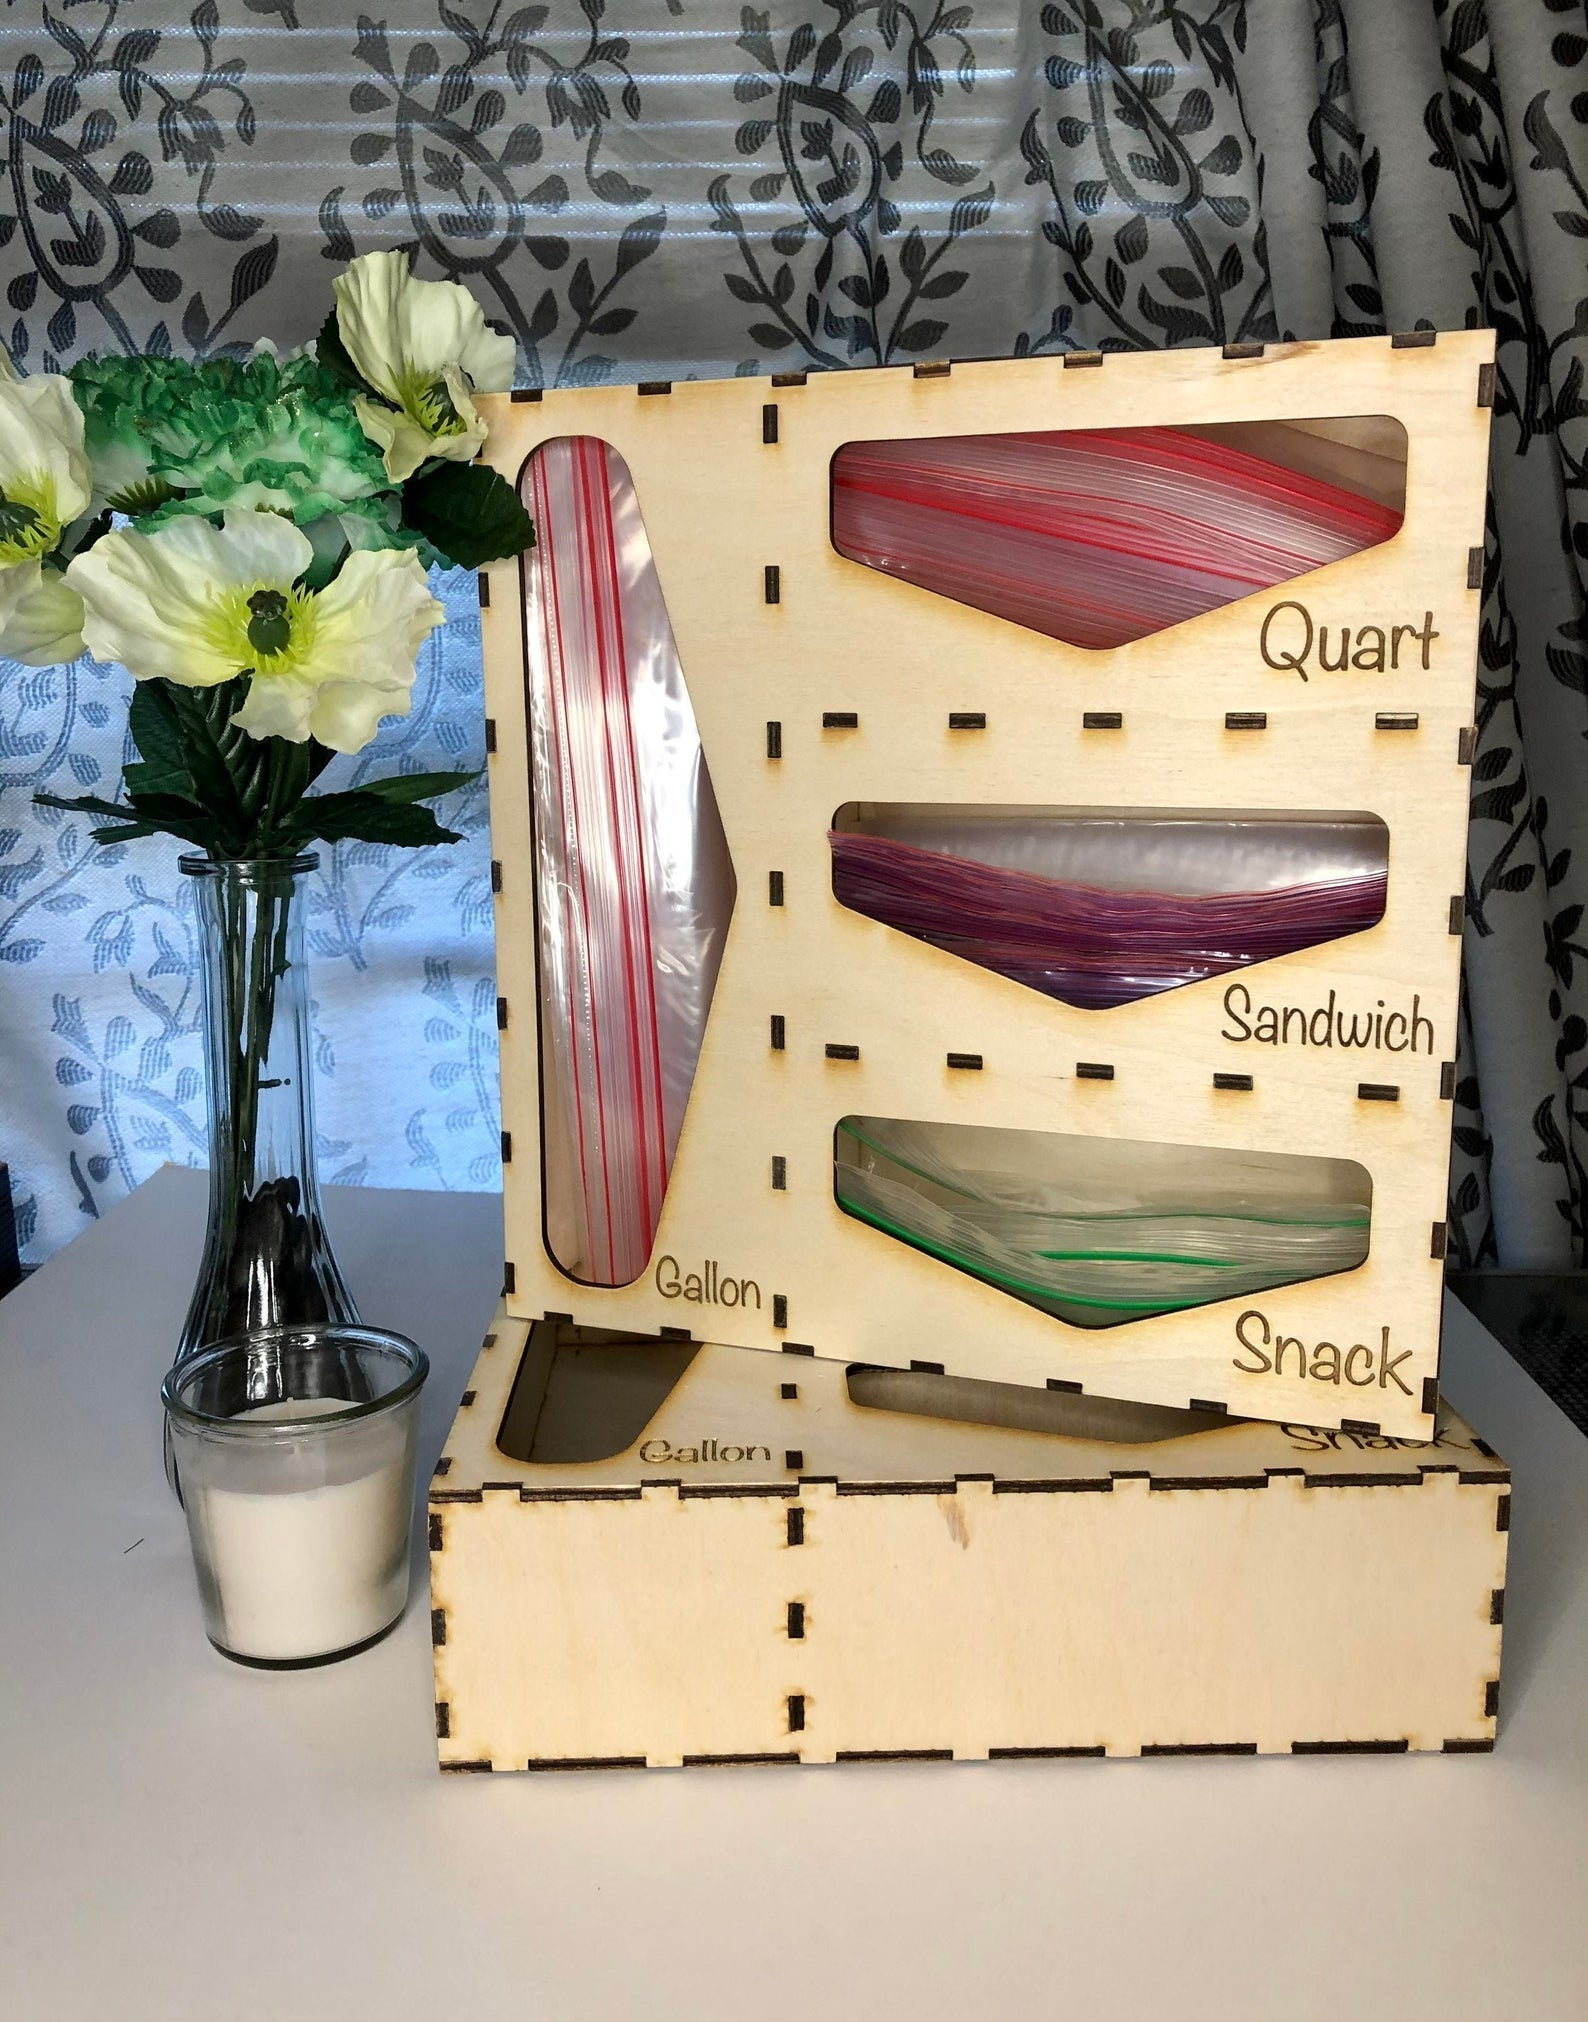 Wooden box with slots for gallon, quart, sandwich, and snack bags